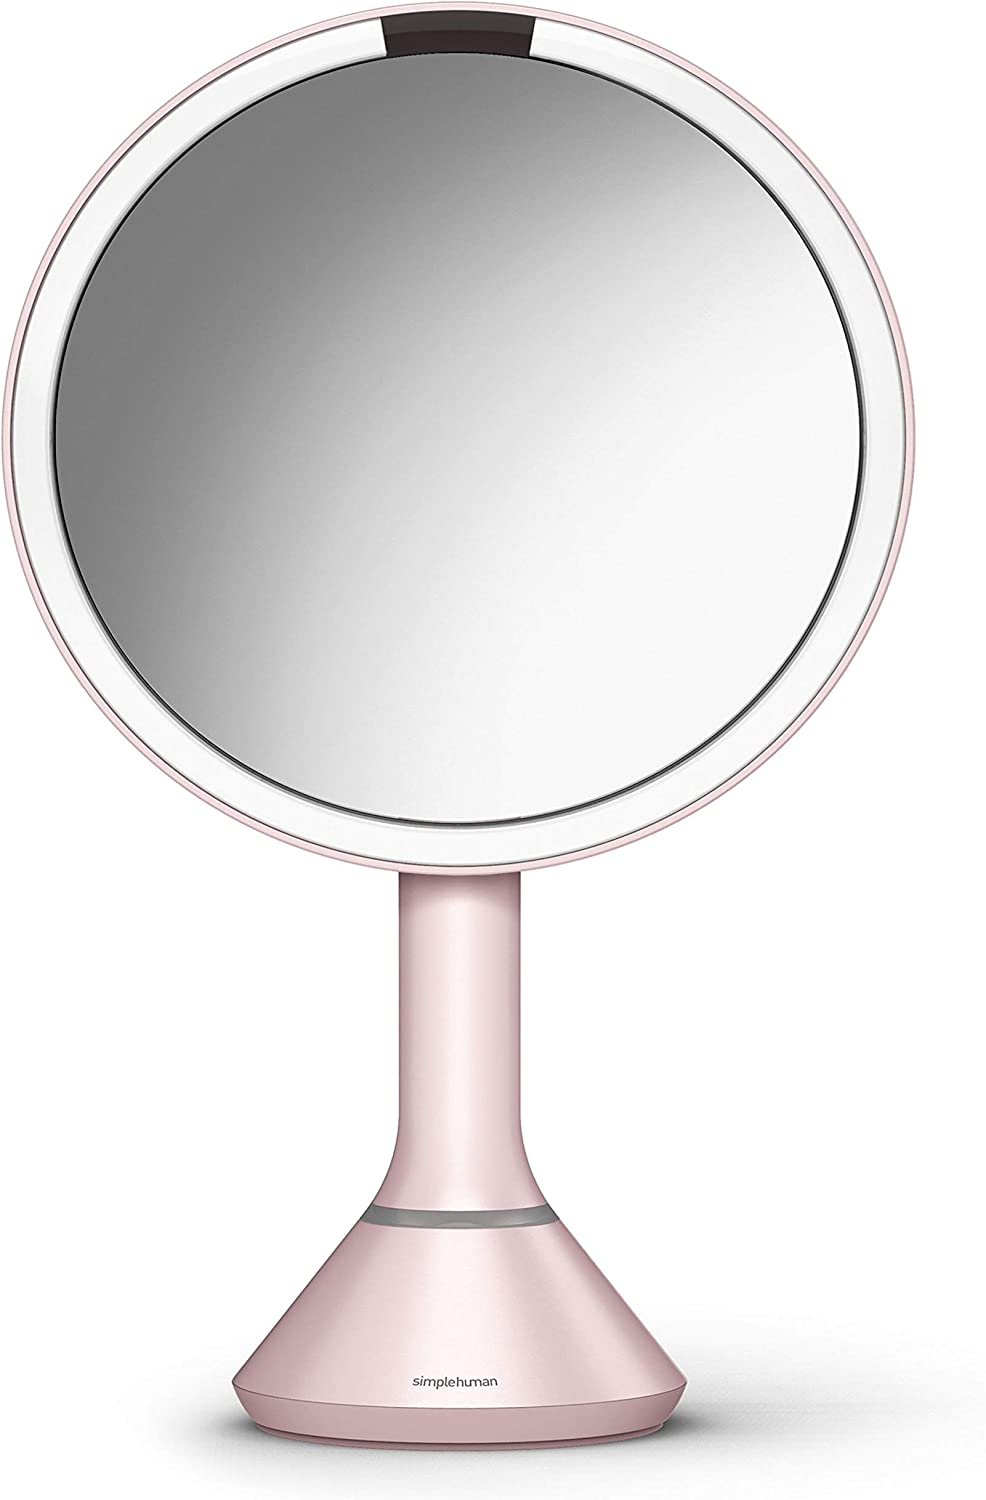 Simplehuman 5X Lighted Tabletop Makeup Mirror Reviews